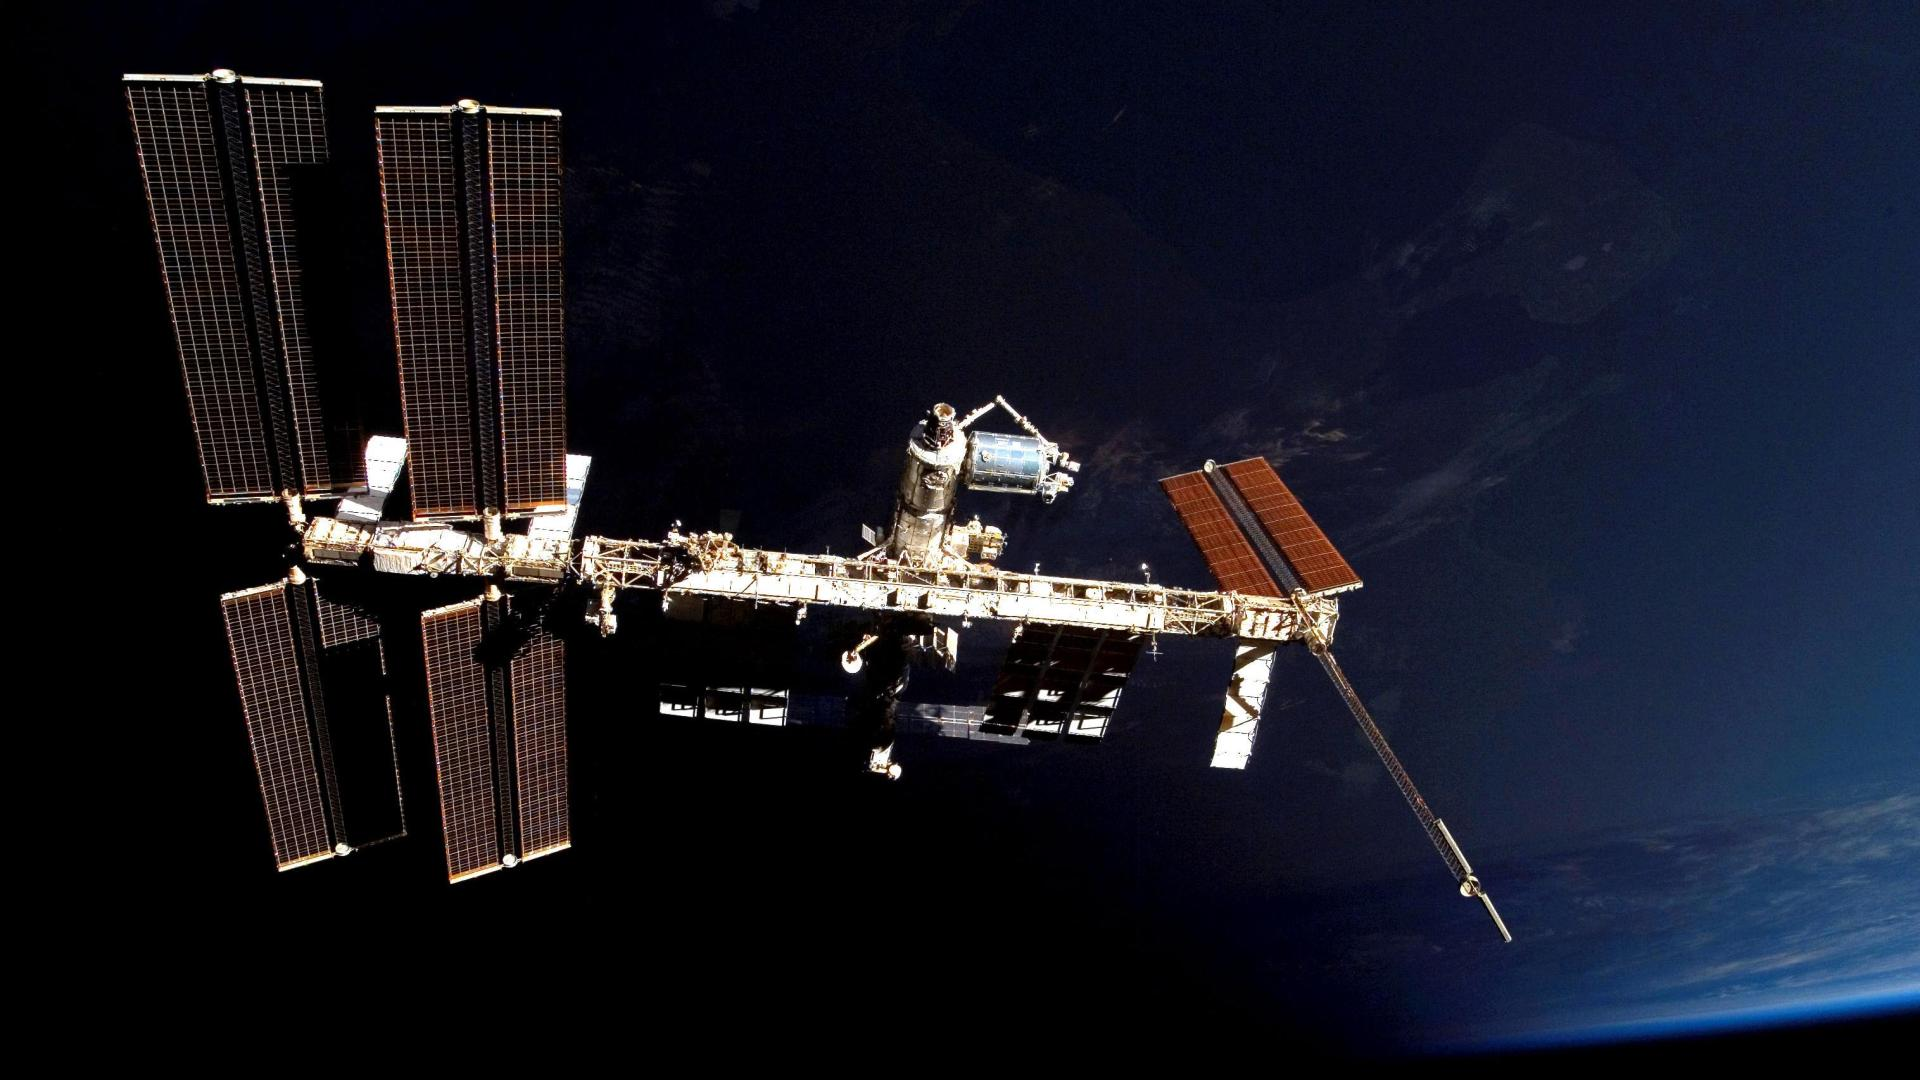 ISS and Columbus module in front of Earth